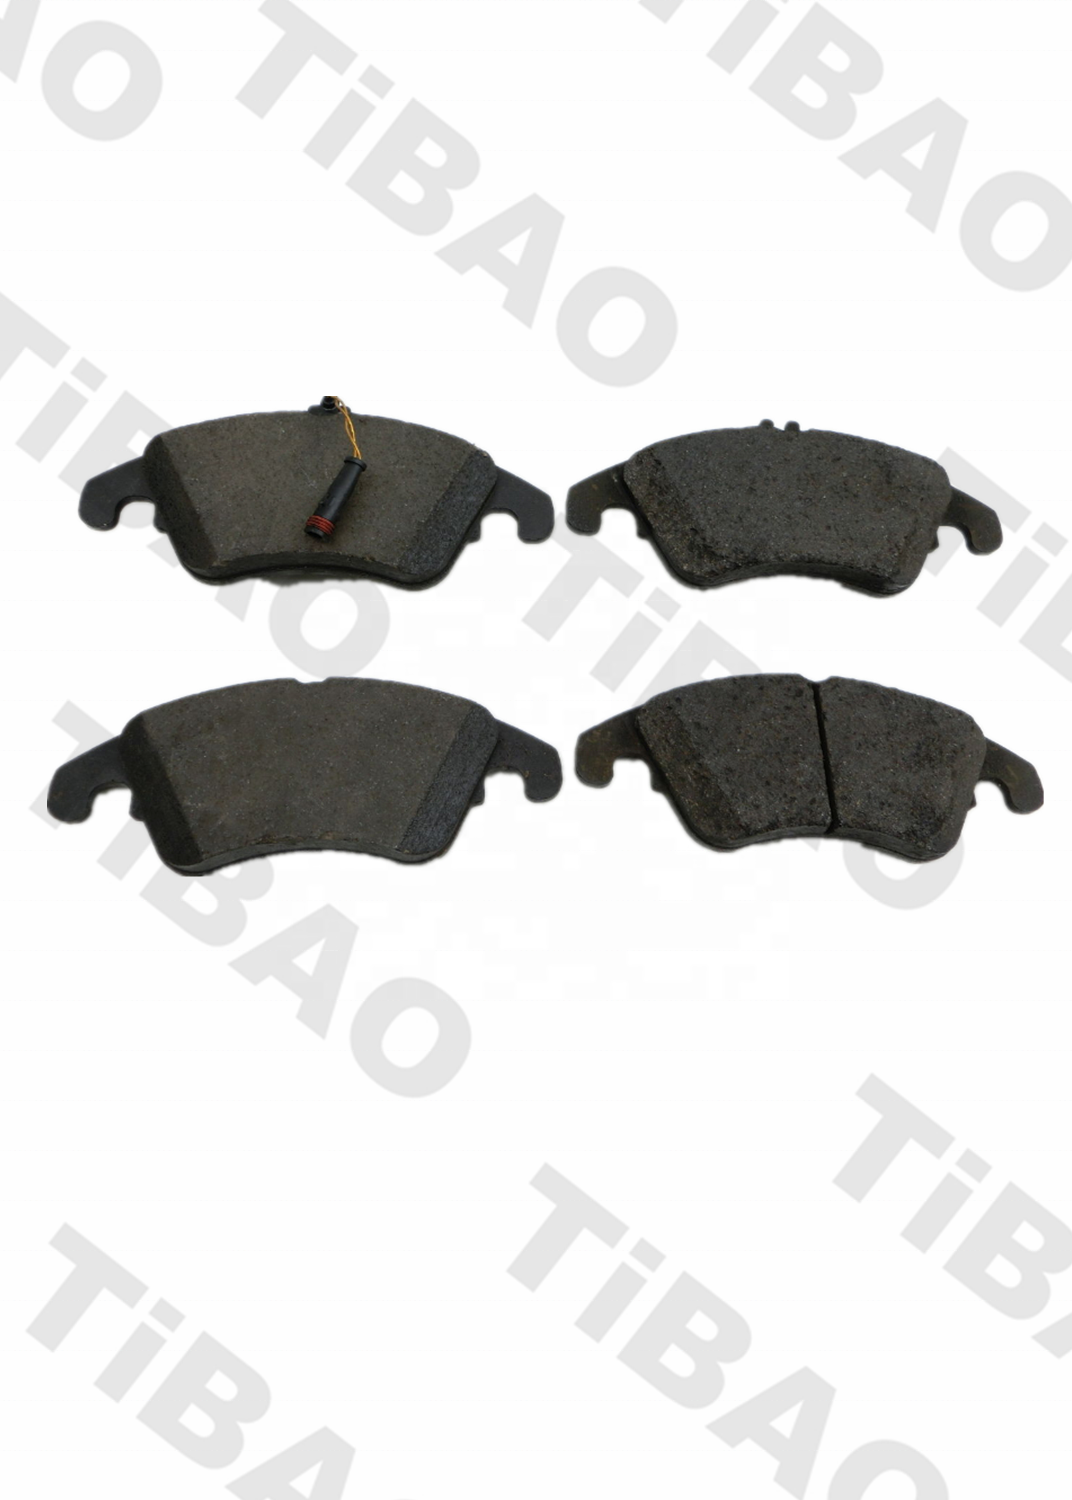 TiBAO Auto Parts Brake Pad for BENZ W204 W212 005 420 10 20